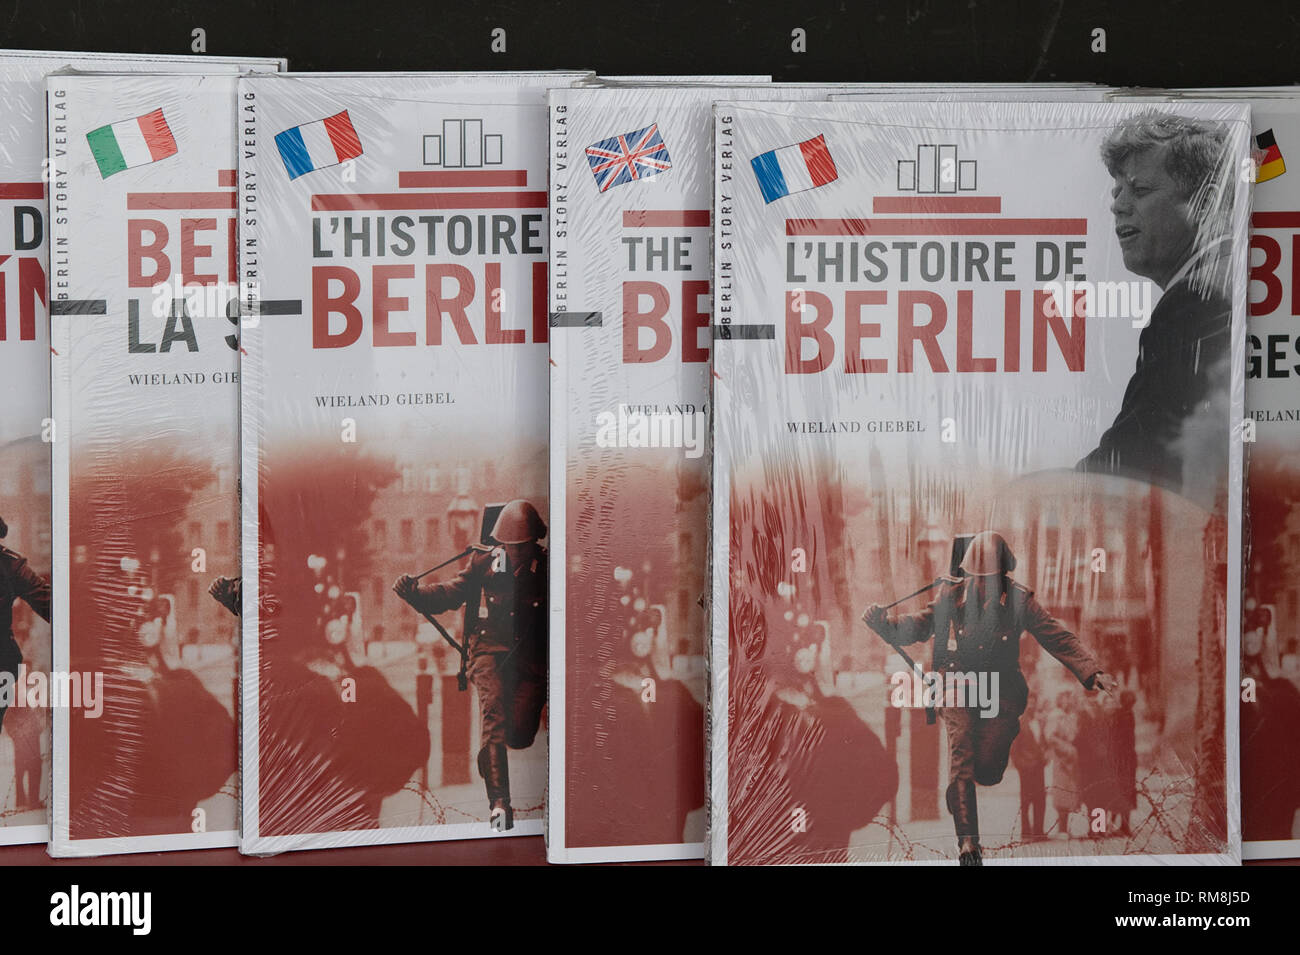 The History of Berlin in international language - Stock Image